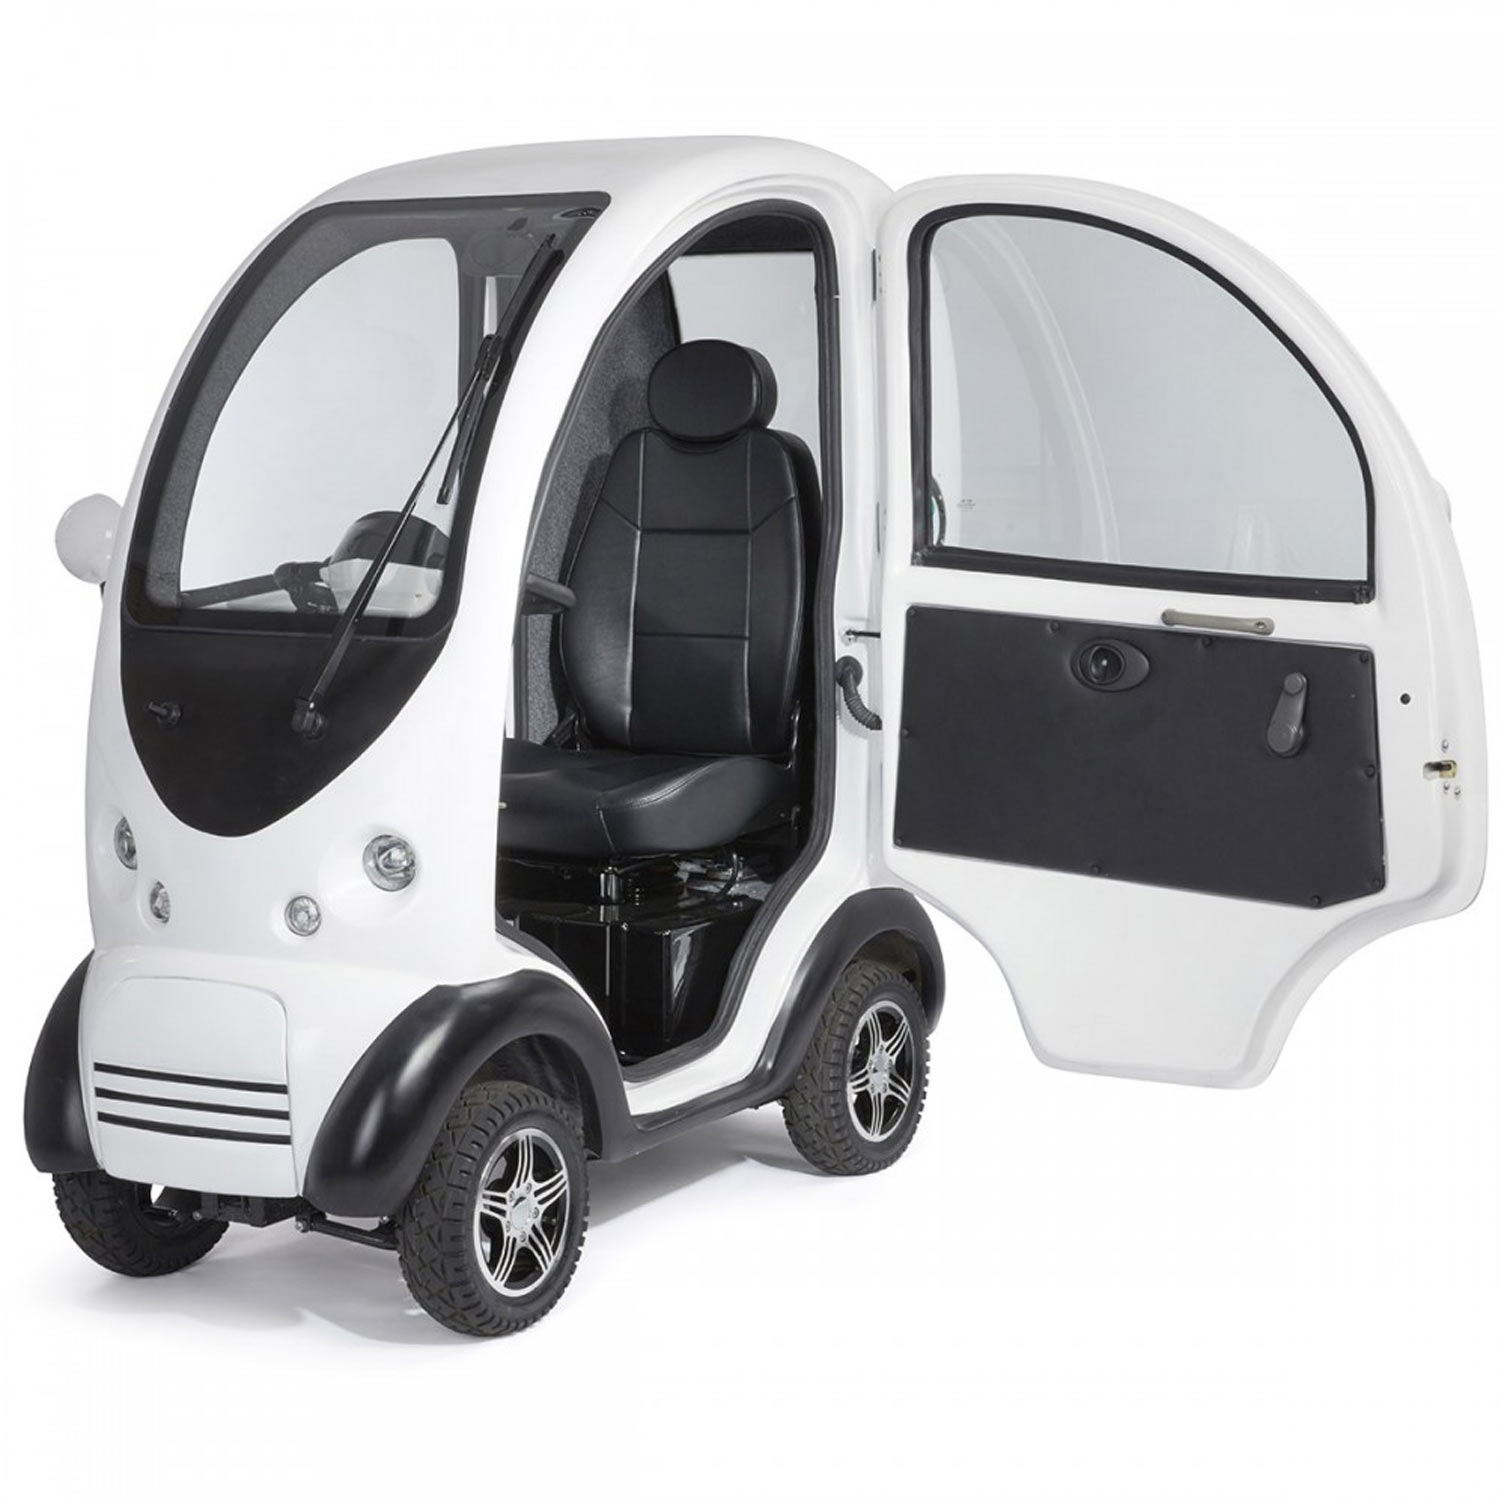 Shropshire Mobility Solutions - MK2 Cabin Car Suppliers - white cabin car